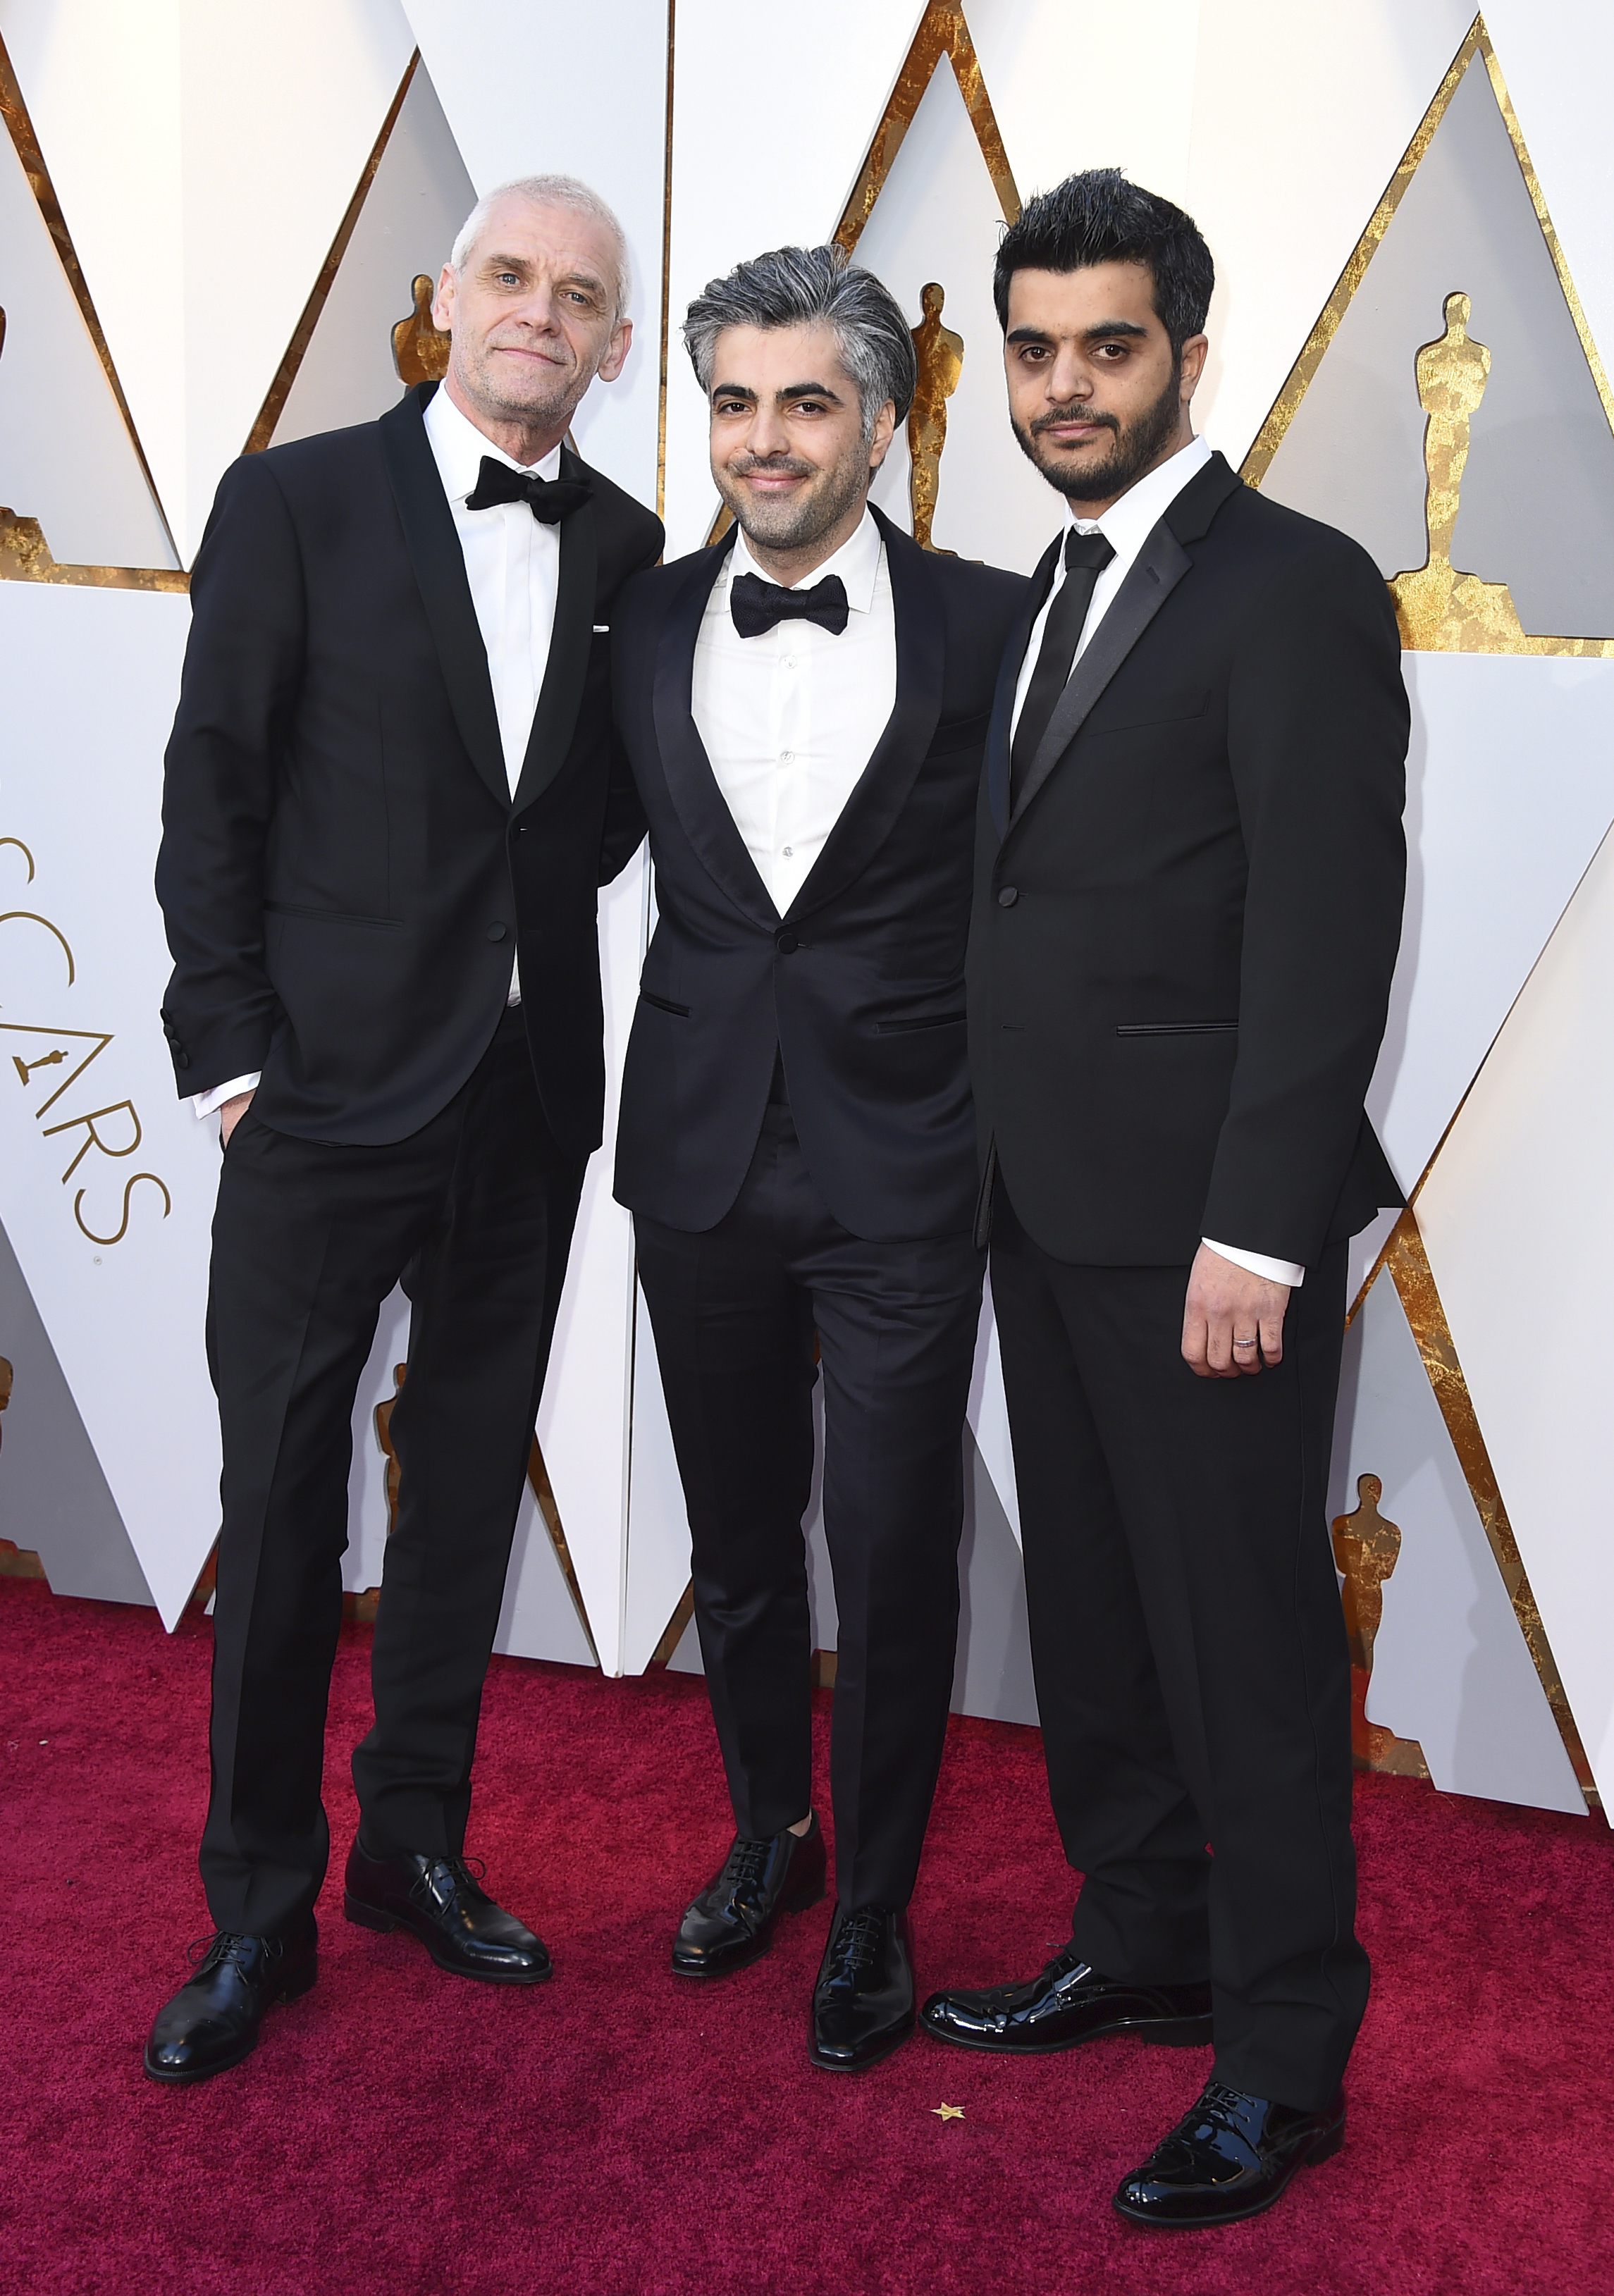 <div class='meta'><div class='origin-logo' data-origin='none'></div><span class='caption-text' data-credit='Jordan Strauss/Invision/AP'>Soren Steen Jespersen, from left, Feras Fayyad, and Kareem Abeed, the team behind Best Documentary Feature nominee ''Last Men in Aleppo,'' arrive at the Oscars.</span></div>